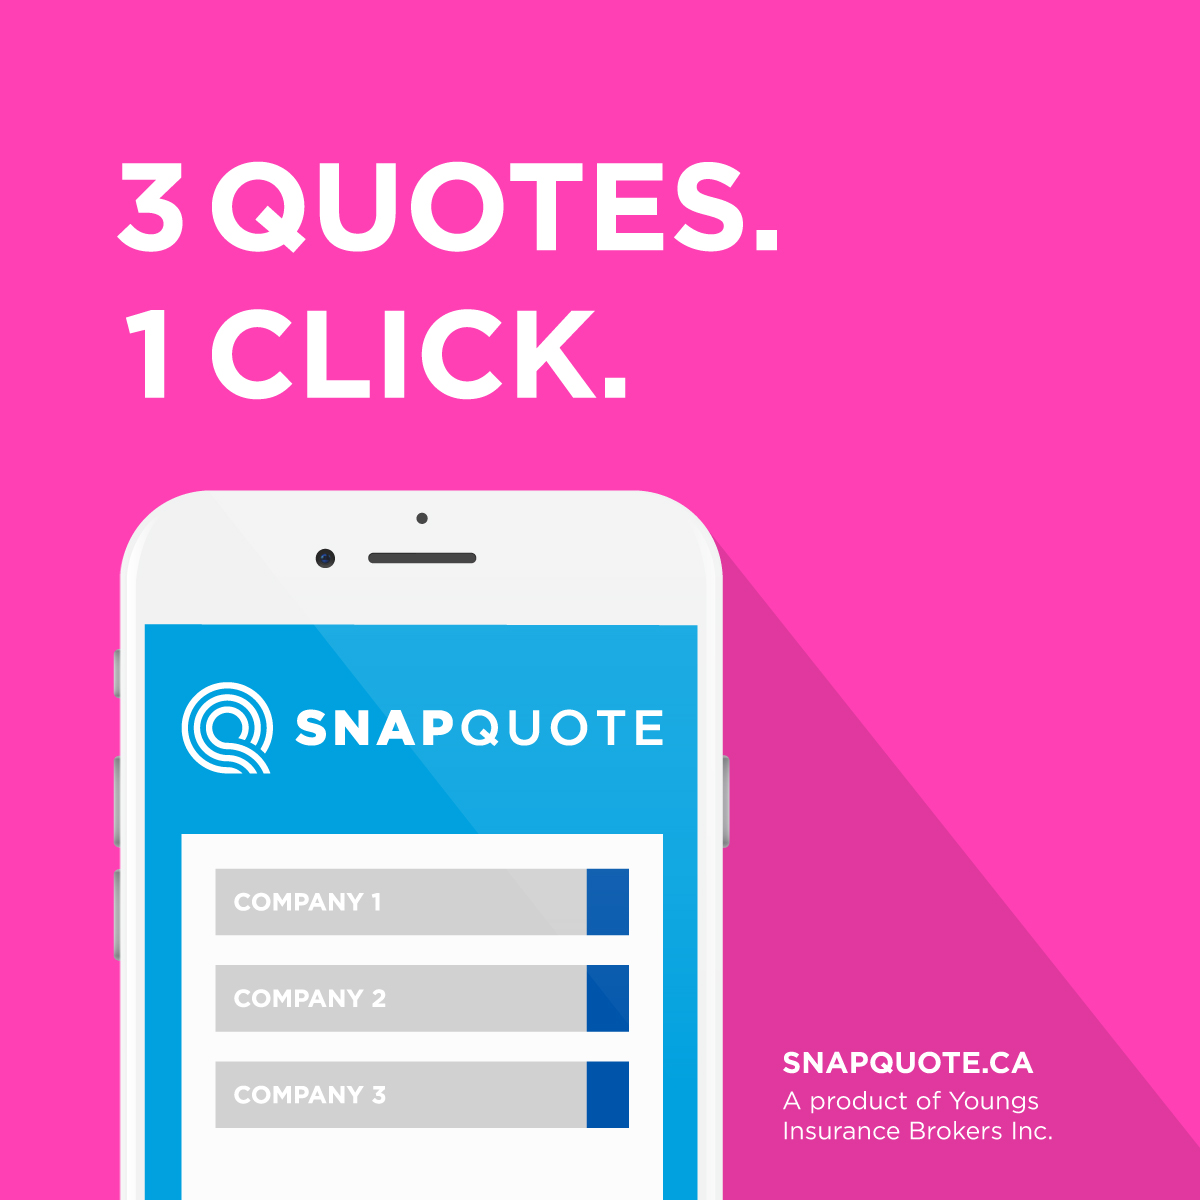 SnapQuote Insurance